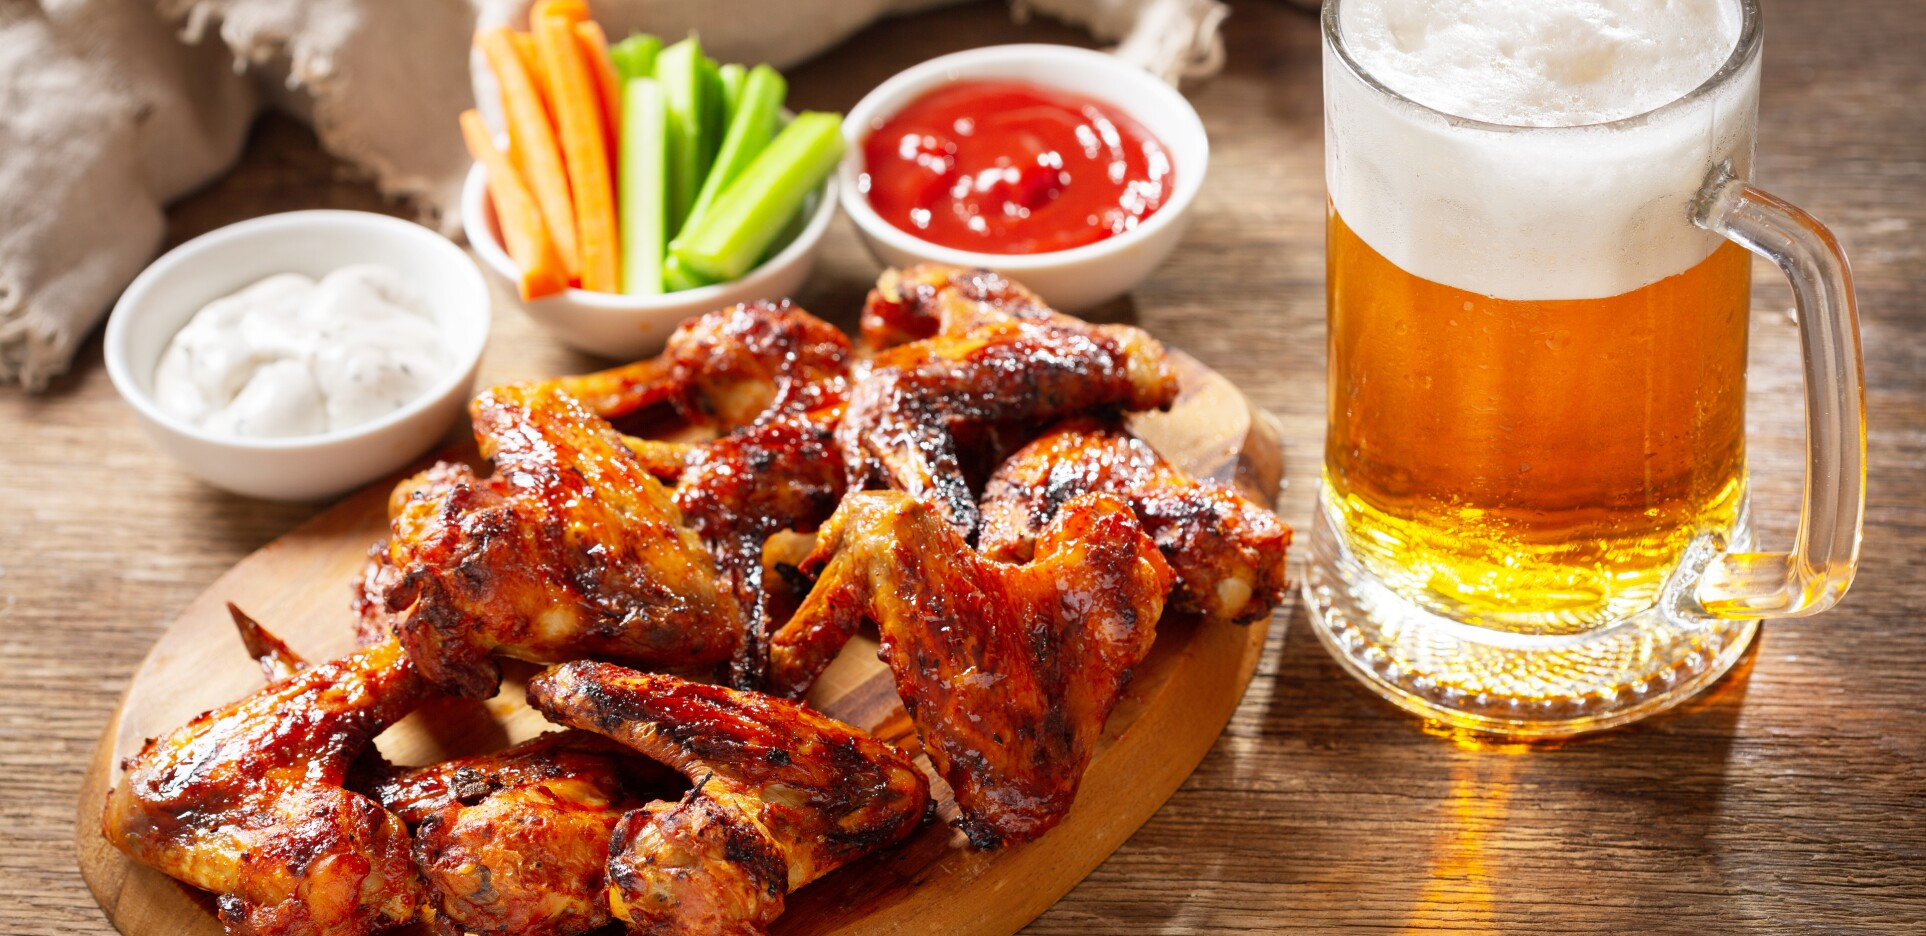 plate of grilled chicken wings and mug of beer